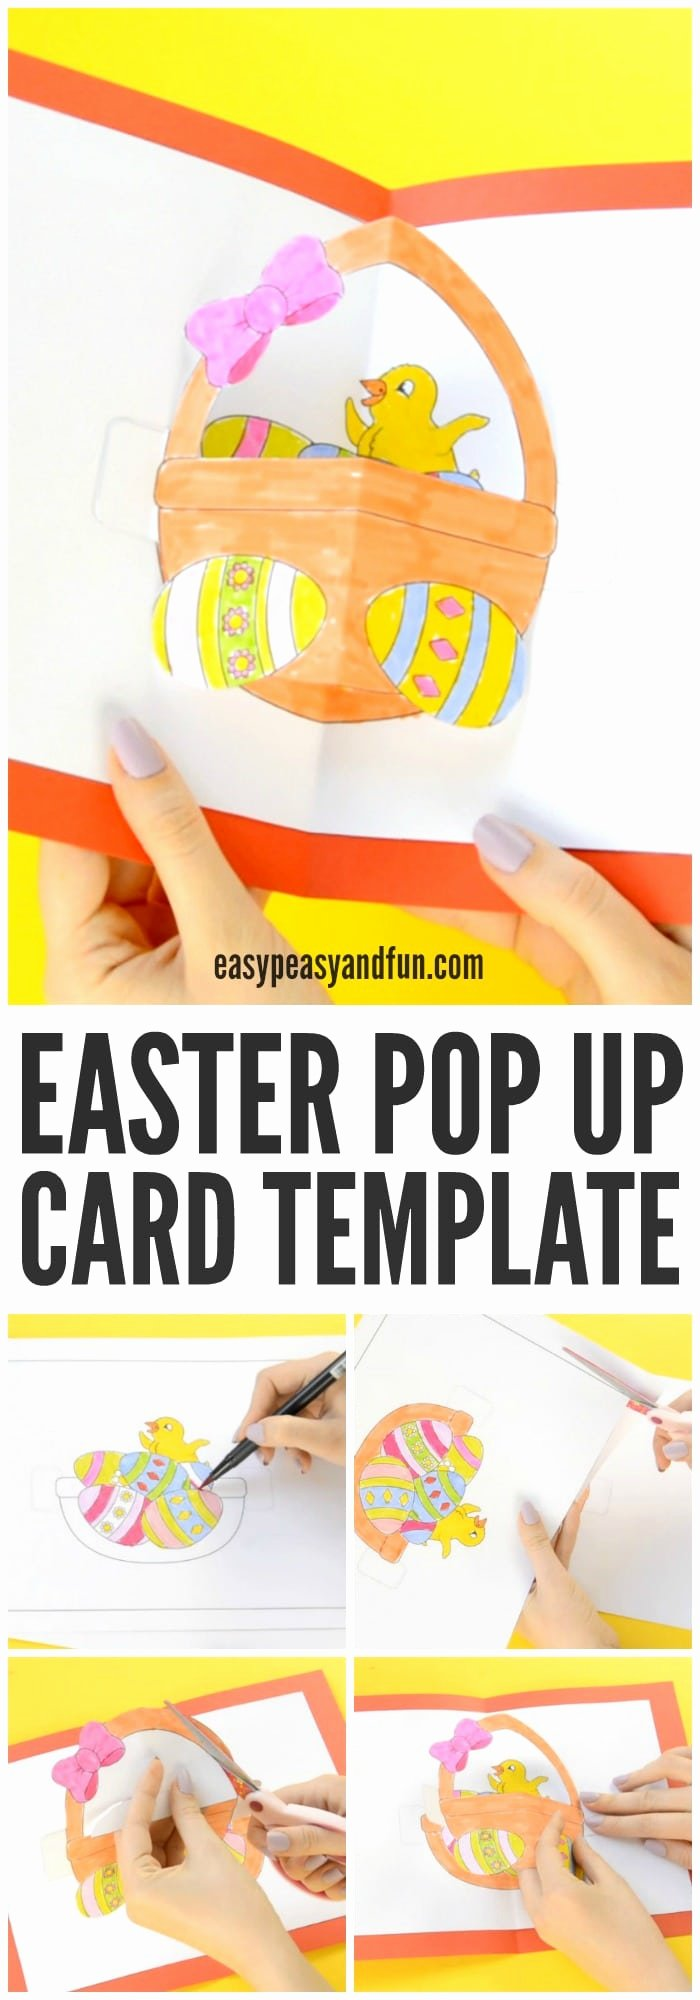 I Love You Pop Up Card Template Unique Diy Easter Pop Up Card Easy Peasy and Fun